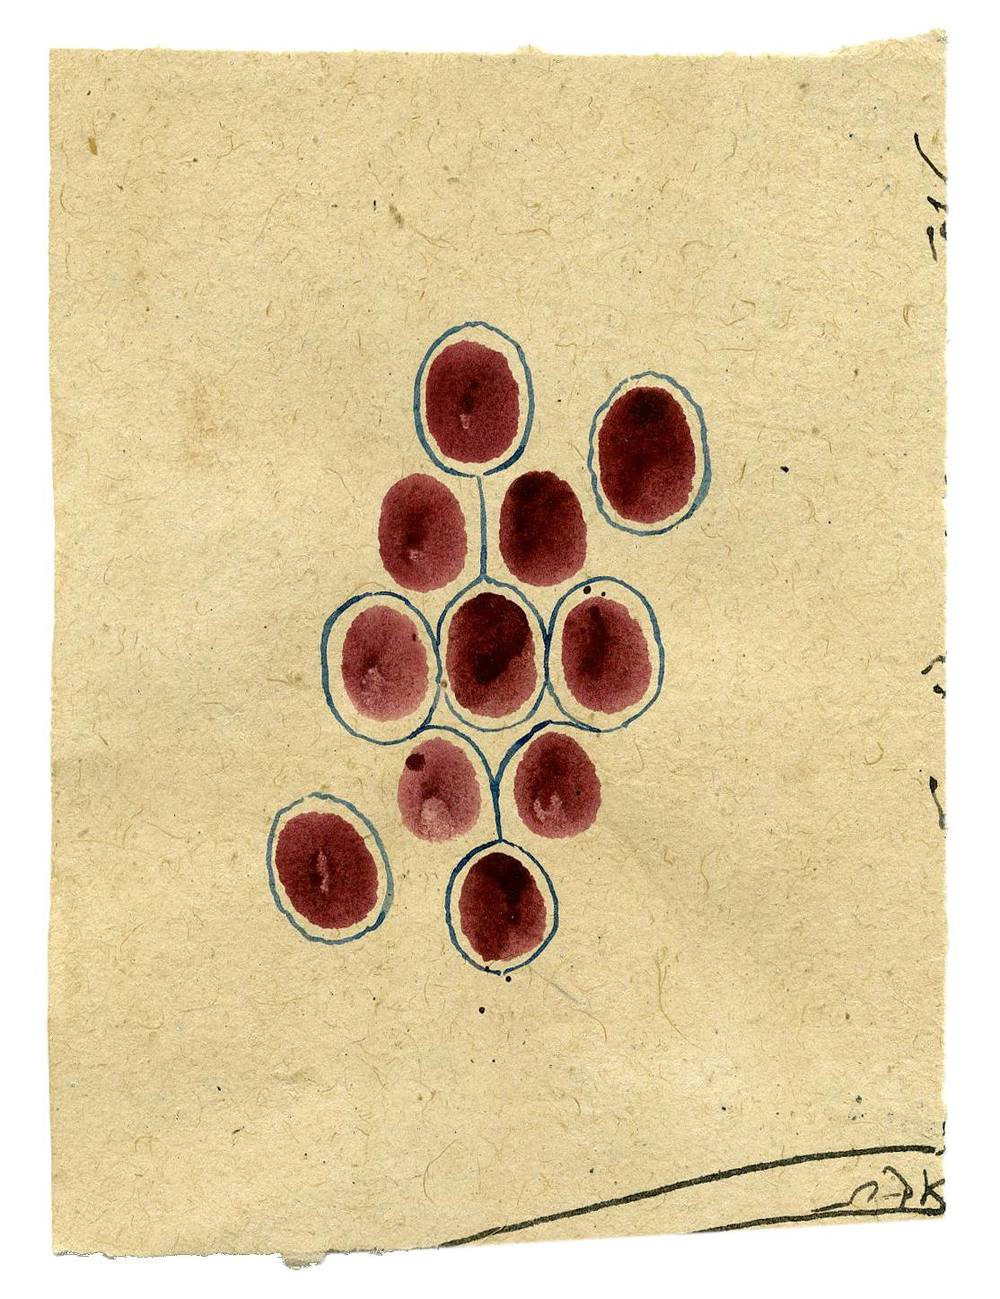 Tantra    Untitled  , ca. 1980-2014 Natural pigments (hand-ground colors: including minerals, mother of pearl, coral, tree resin, vegetable pastes) on vintage paper 6.69 x 5 inches 17 x 12.7 cm Tant 25